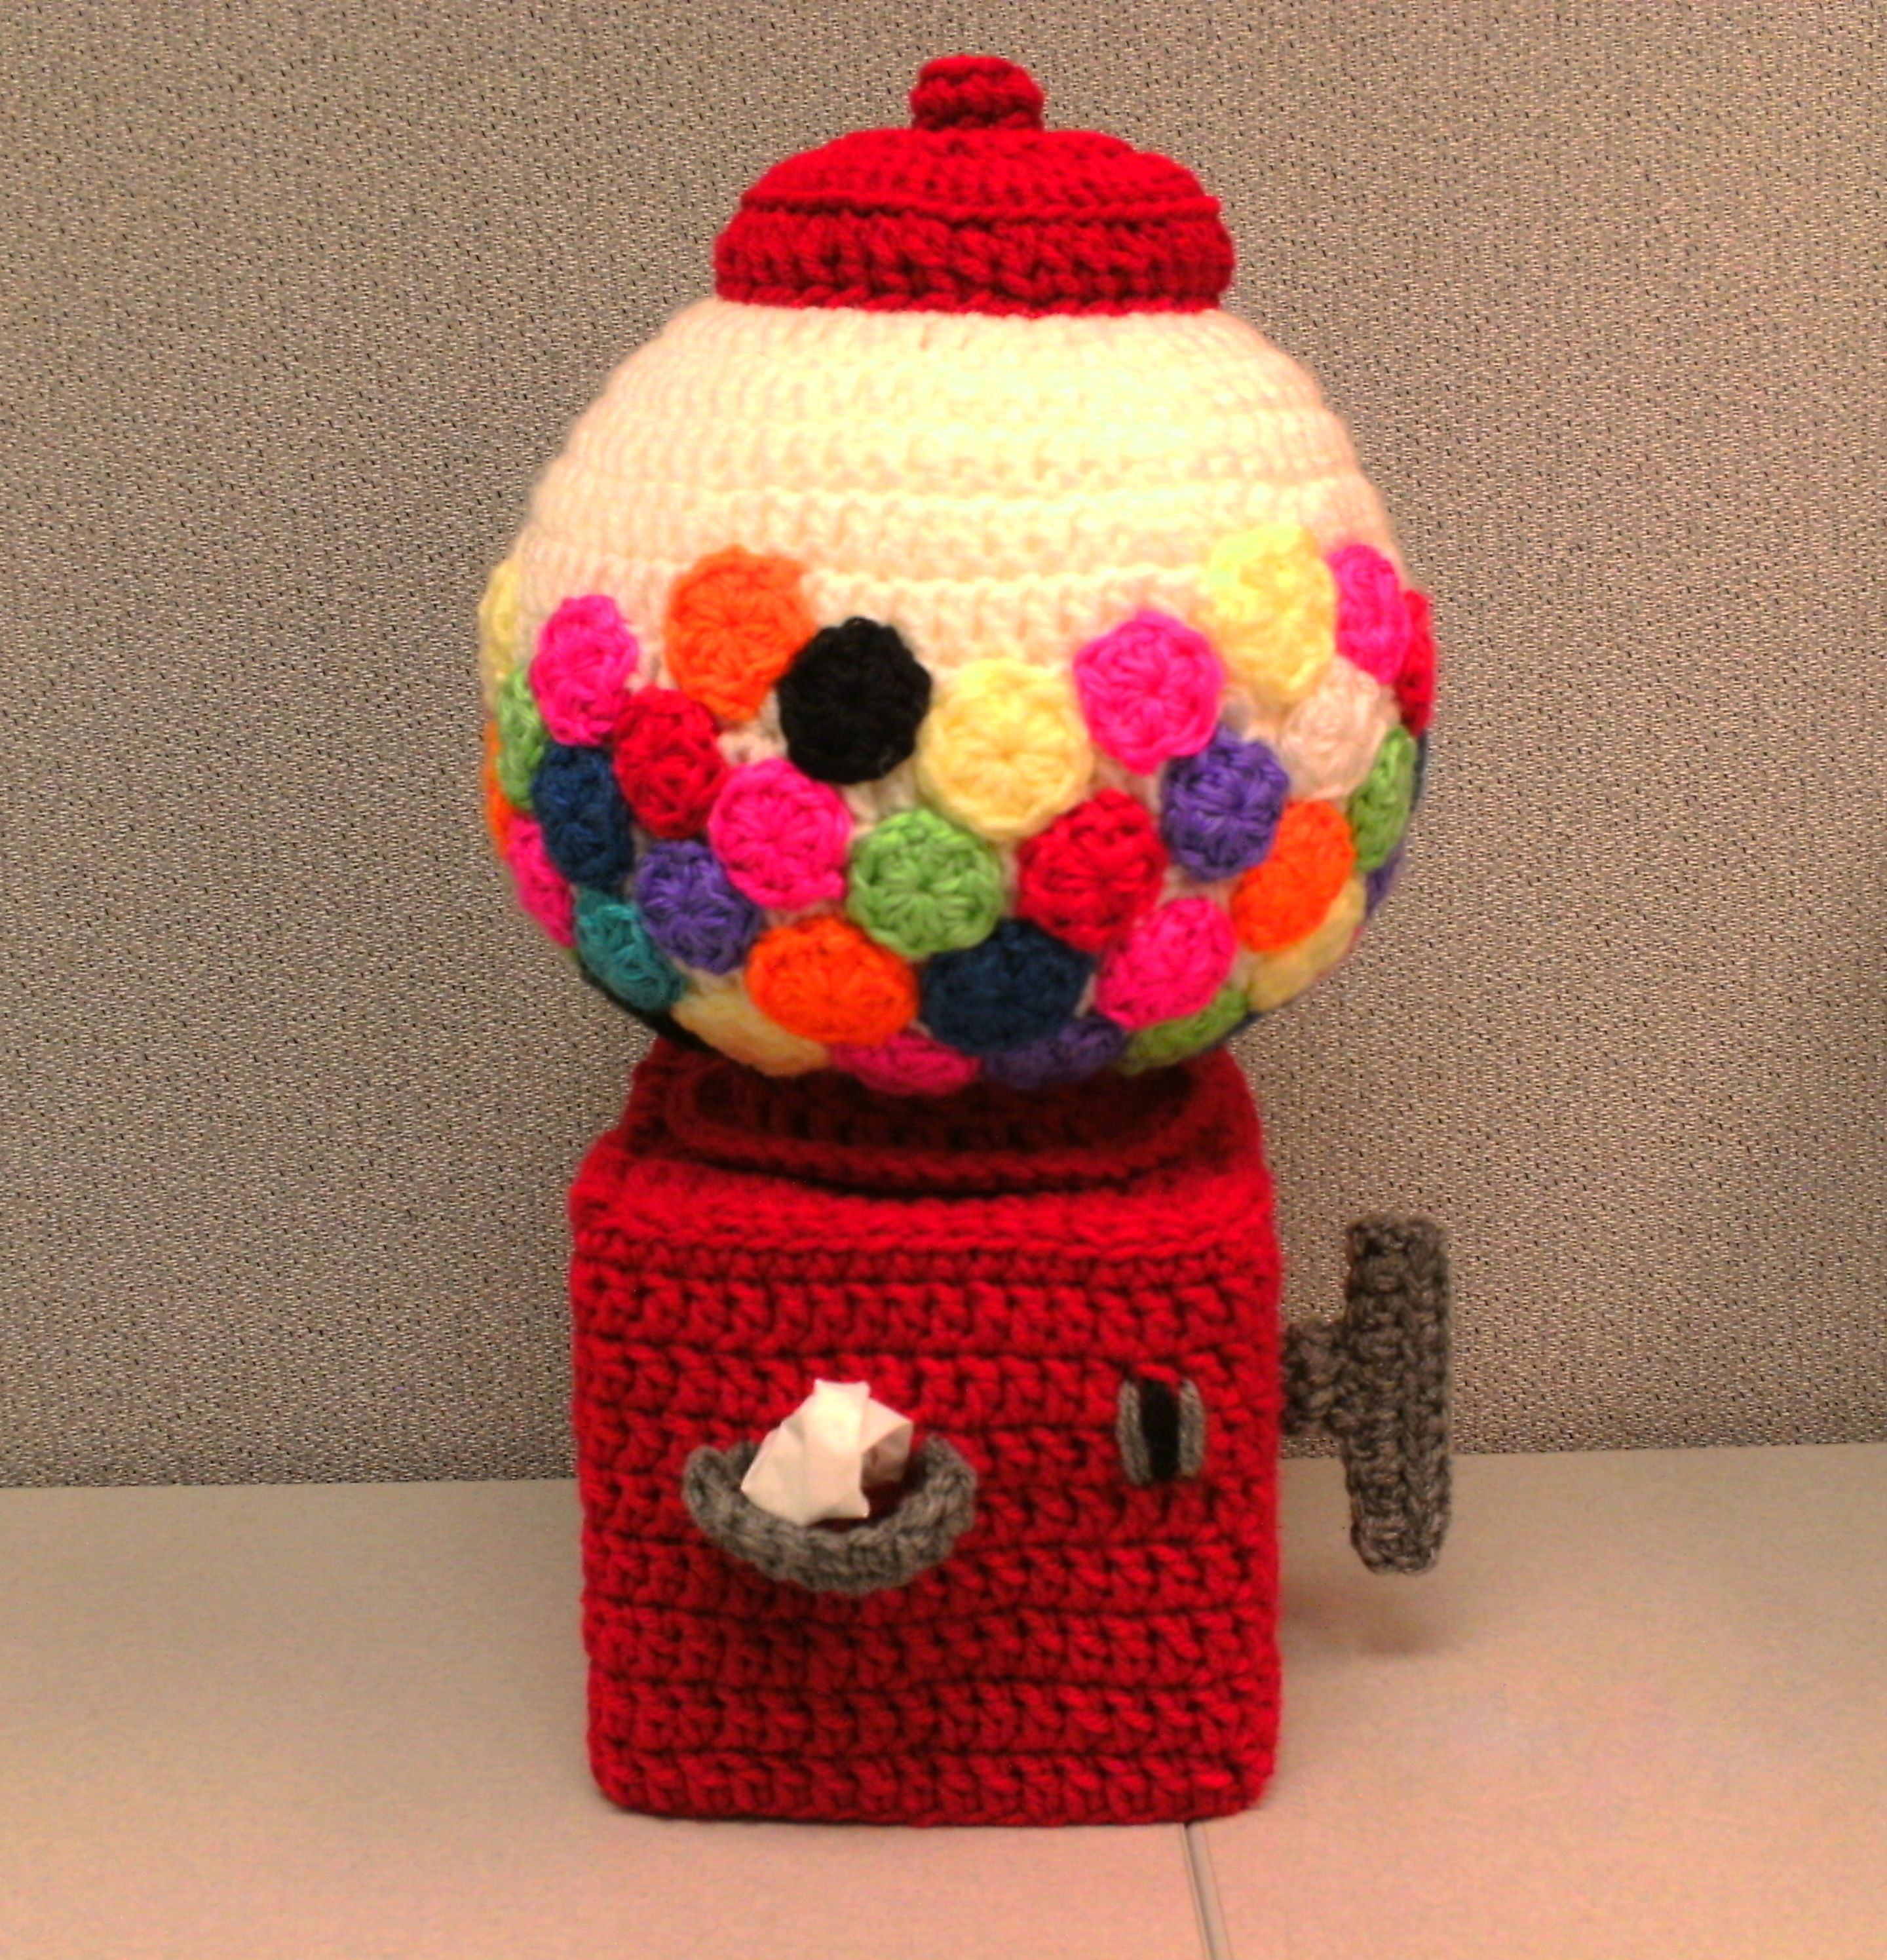 Gumball Machine Tissue Cover Pattern In Toyland Tissue